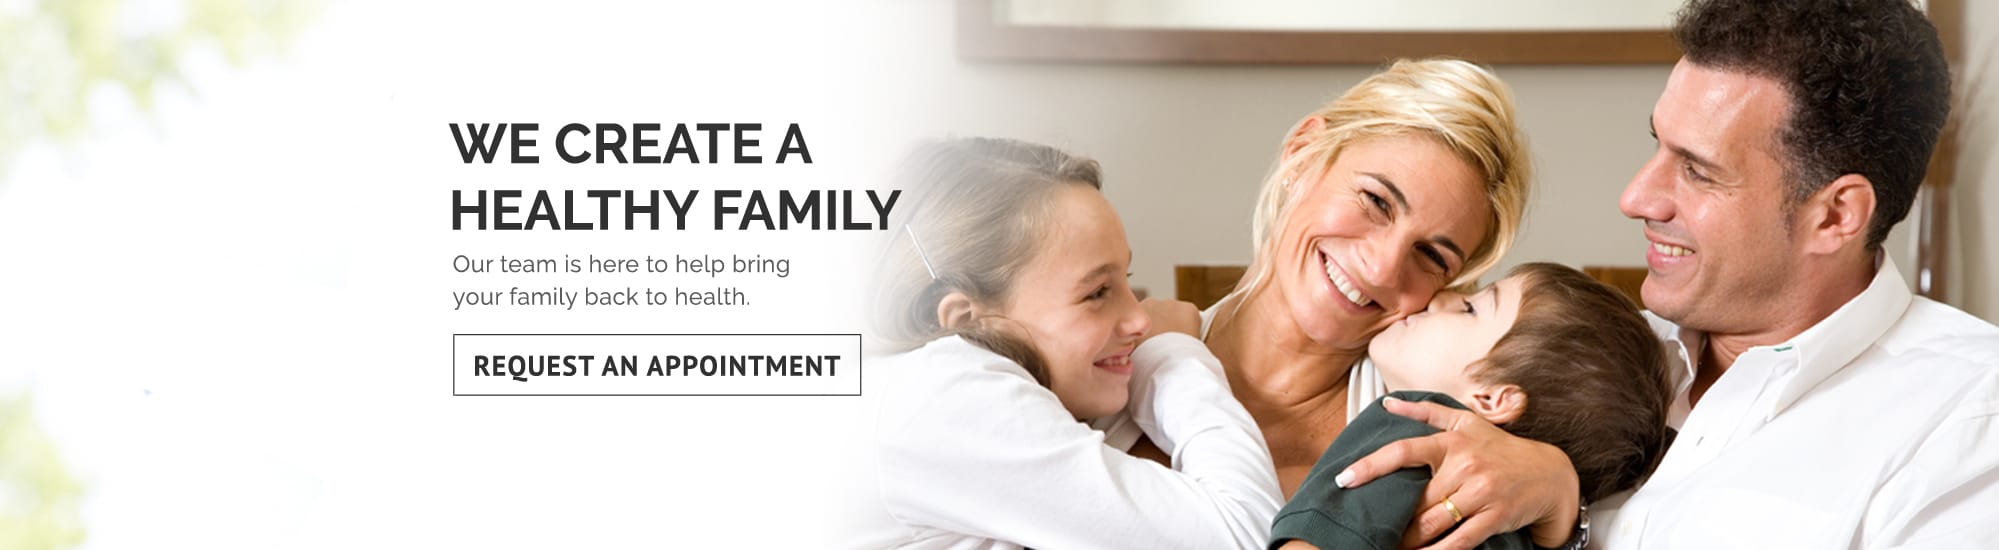 Family Care in Sioux Falls SD